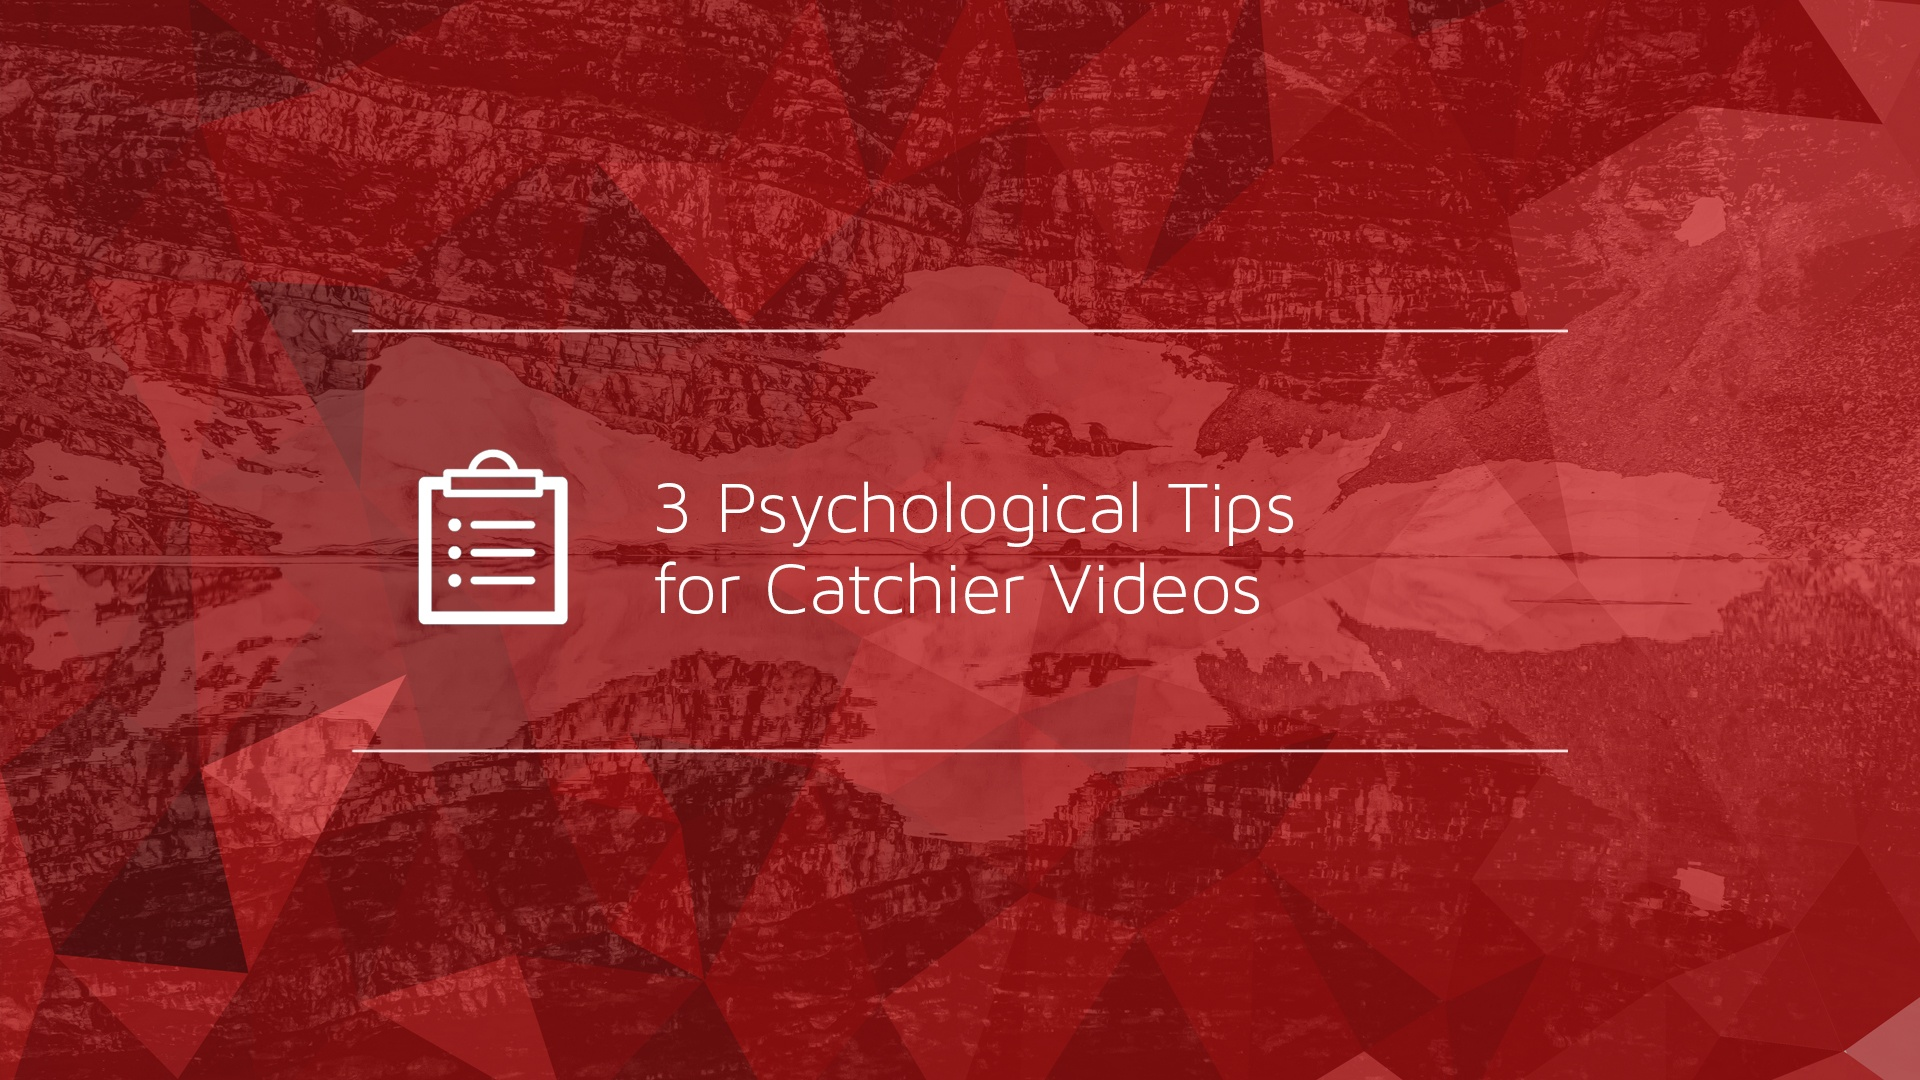 3 Psychological Tips for Catchier Videos.jpg